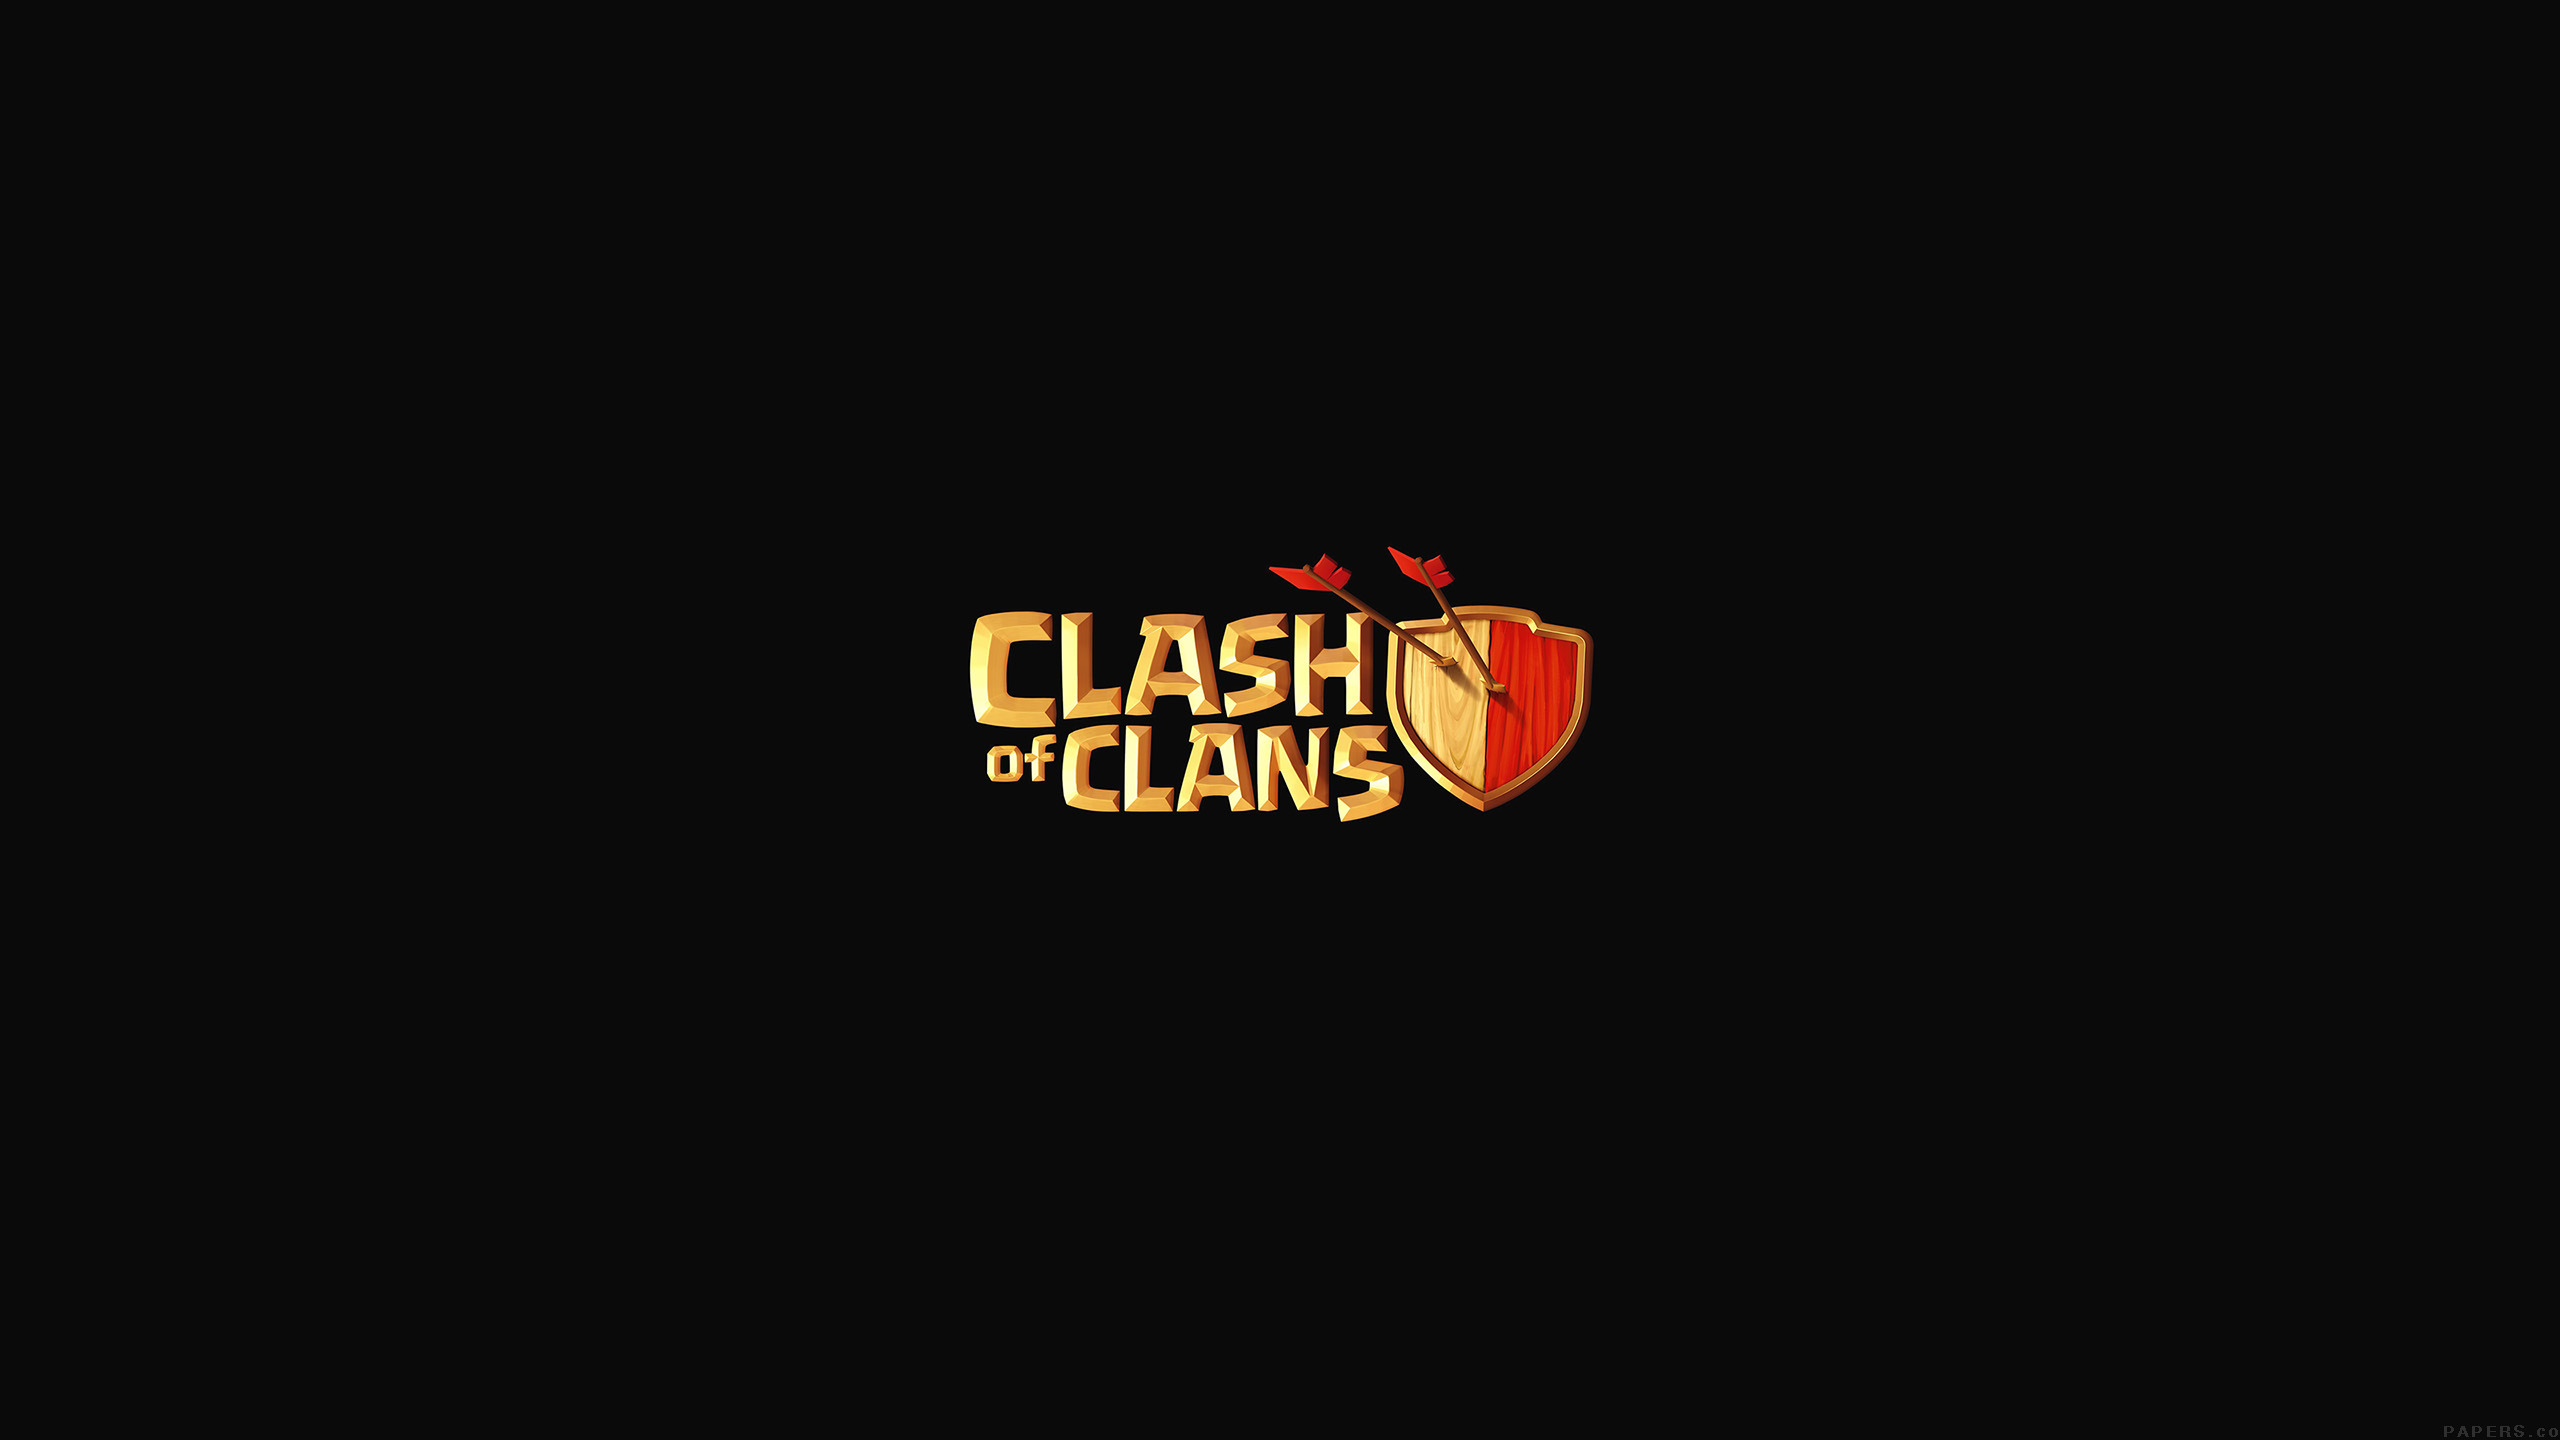 of clans wallpaper - photo #8